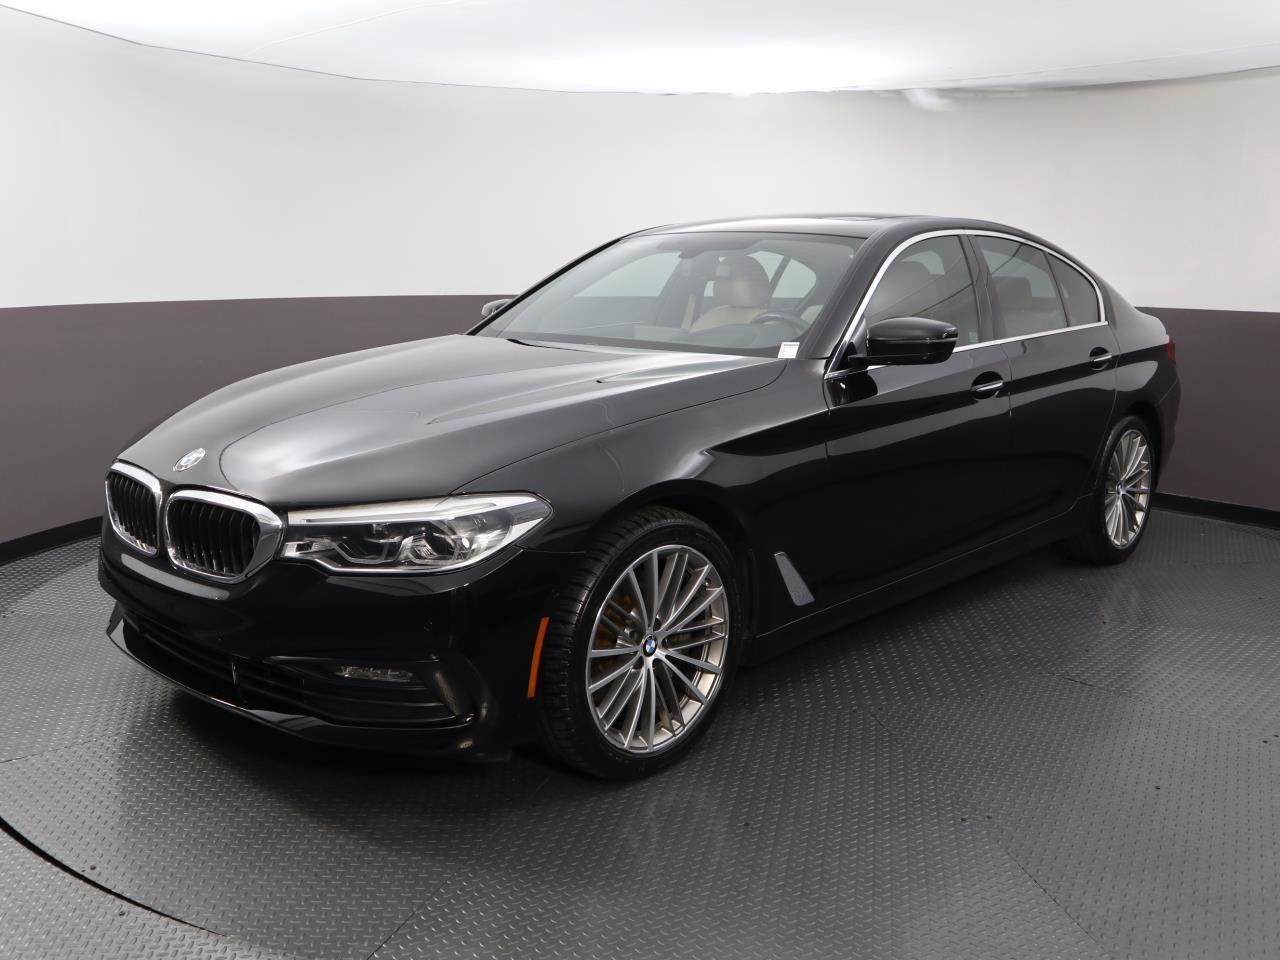 Used BMW 5-SERIES 2017 MARGATE 540I